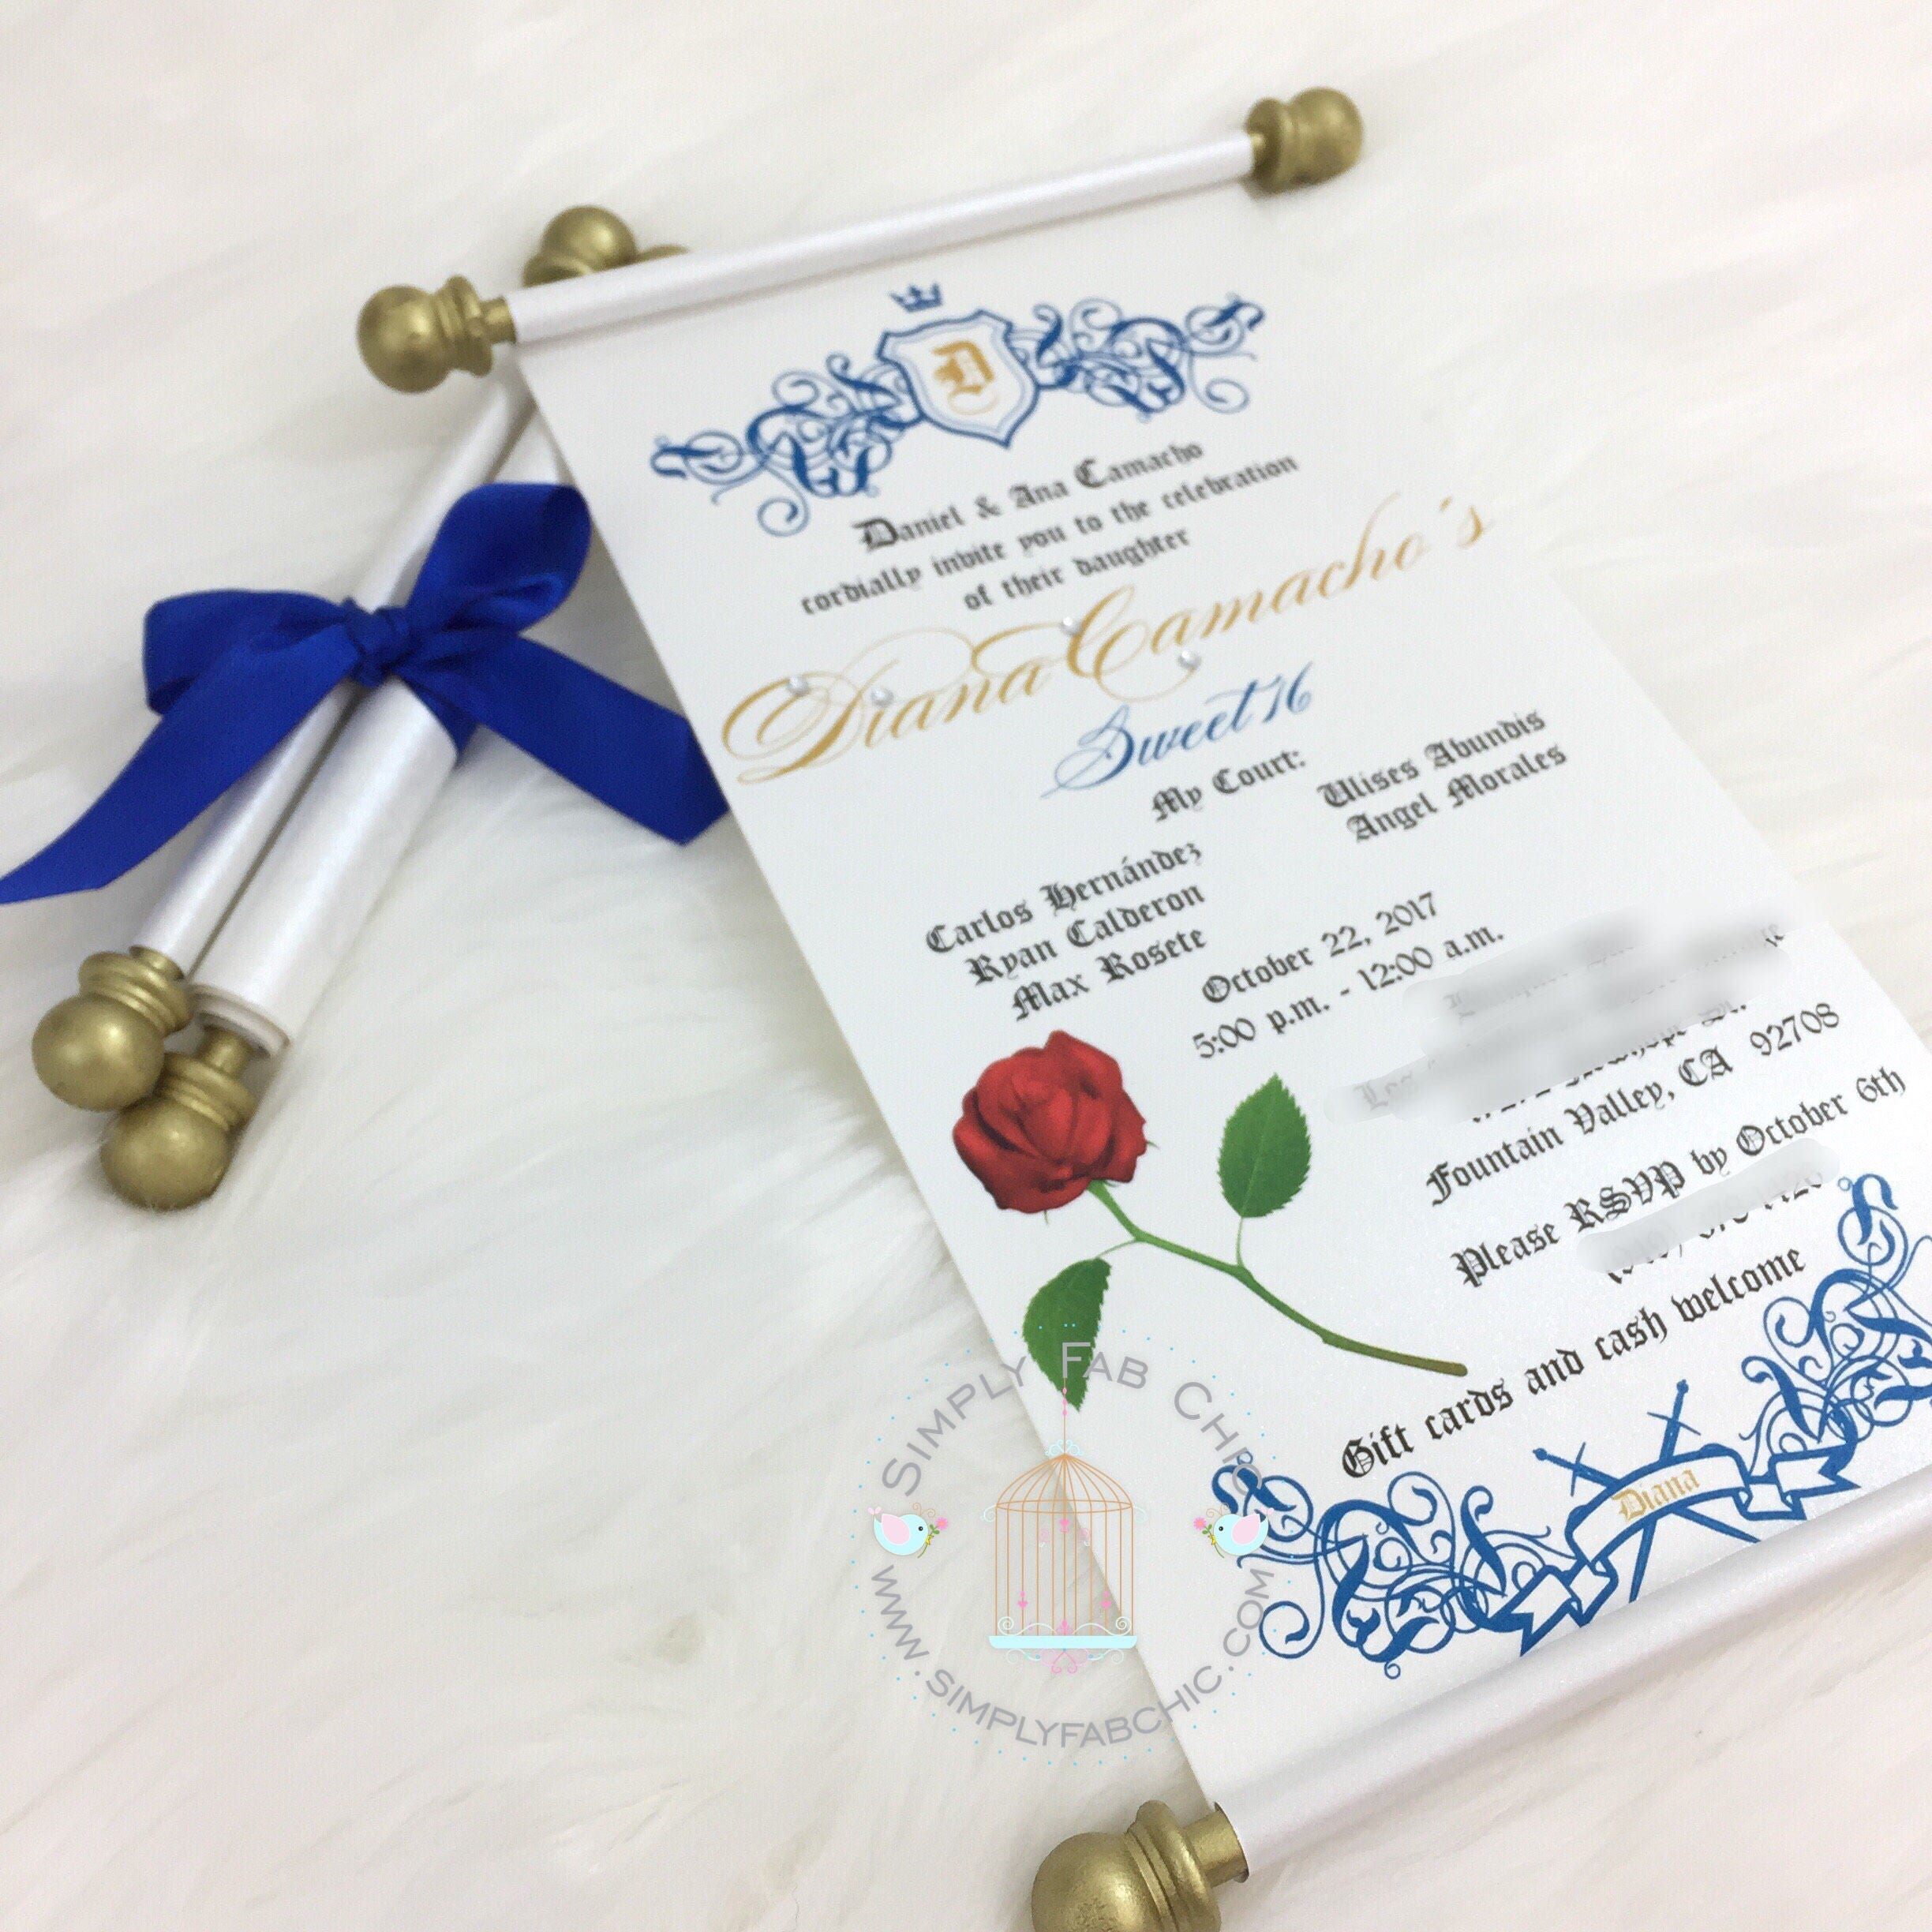 Beauty And The Beast Scroll Invitation Birthday Wedding Handmade Sweet 16 Quinceanera Set Of 10